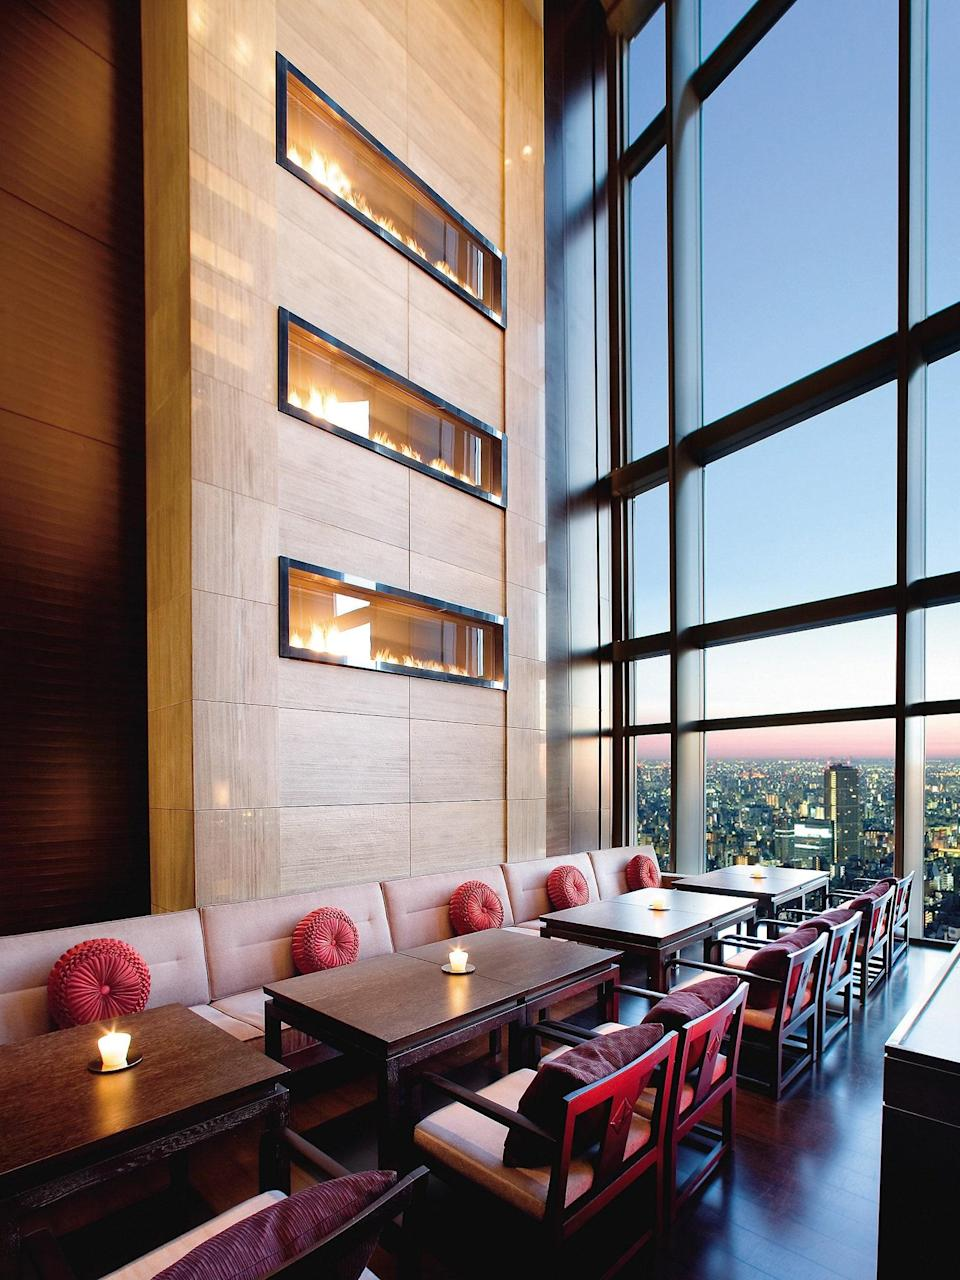 """<p><strong>How did it strike you on arrival?</strong><br> Photos don't do it justice. Rising to the upper floors of the Nihonbashi Mitsui Tower, the 37th-floor lobby is like a gallery to Tokyo's best angles. The lobby overlooks a massive, multi-story space in two directions—the check-in desk is backdropped by a western outlook through floor-to-ceiling windows, while the opposite frames Tokyo's eastern sprawl. You'll be floored, in more ways than one.</p> <p><strong>Nice. What's the crowd like?</strong><br> It's a mature, all-discerning crowd that loves a tip-top spa.</p> <p><strong>The good stuff: Tell us about your room.</strong><br> No matter the category, the view is paramount. The Mandarin Grand Rooms perch between the 30th and 36th floors like a tranquil retreat in the sky; the frenetic financial district eases down below and, on cloudless days, Mount Fuji glistens in the distance. Interiors are massive, and rooms feel bigger than most suites, all outfitted in a neutral palette; light and clean-lined wooden bedside tables are built into the wall, as is a headboard that's framed with hanging paper pendant lamps.</p> <p><strong>We're craving some deep, restorative sleep. They got us?</strong><br> Beds are as supple as the sheets are slippery. And if you can't find a perfect pillow on the extensive """"pillow menu,"""" it's not the pillow—it's you.</p> <p><strong>How about the little things, like mini bar, or shower goodies. Any of that find its way into your suitcase?</strong><br> There's a good reason that rooms come with binoculars because there is almost too much action to scope.</p> <p><strong>Please tell us the bathroom won't let us down.</strong><br> A glass wall, a backdrop to the vanity, can be closed off with interior blinds at the push of a button. There's a walk-in shower, a separate tub, and a room for the toilet. Nozzles are designed with amber-like handles to warm up the granite surfaces, and the Bottega Veneta products, without question, are worth pocket"""